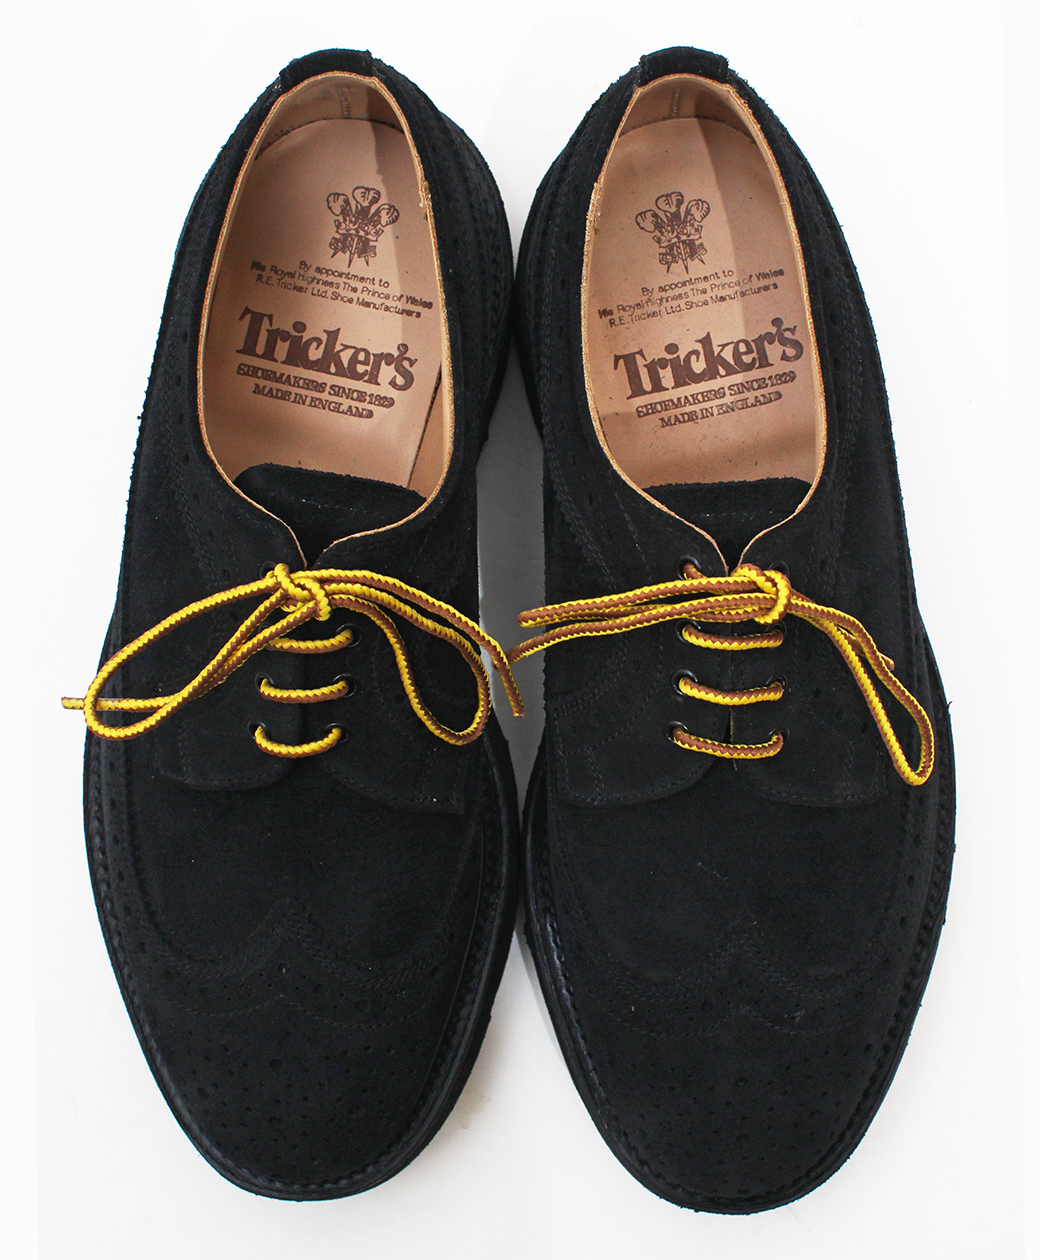 Tricker's M7306 Bloch Repello Suede Golosh Brogue(Black)